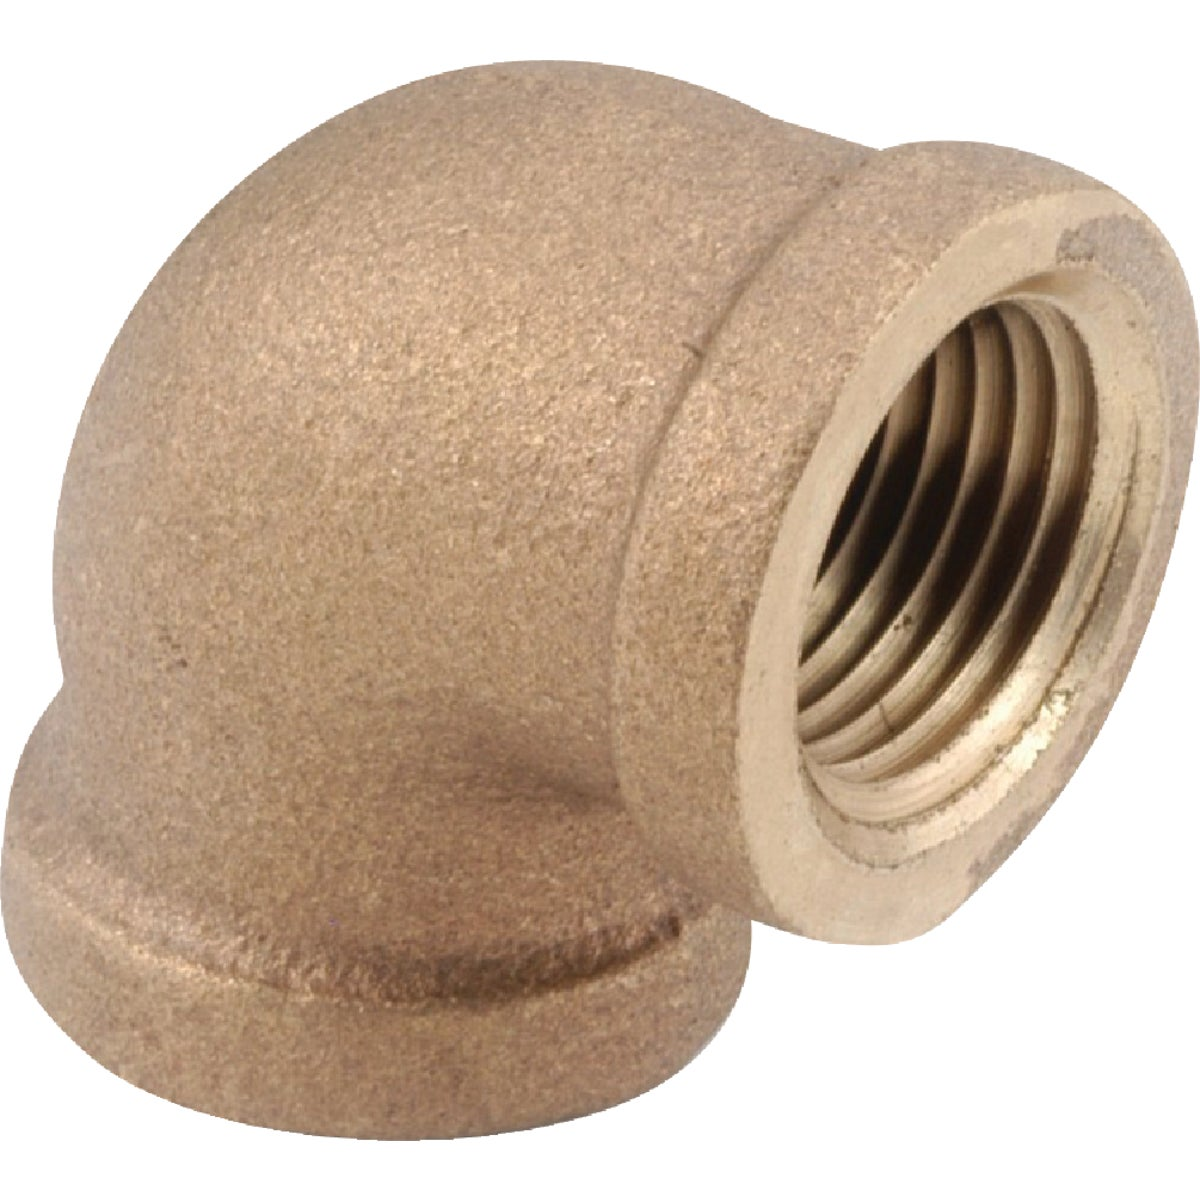 "1"" 90D BRASS ELBOW - 738100-16 by Anderson Metals Corp"